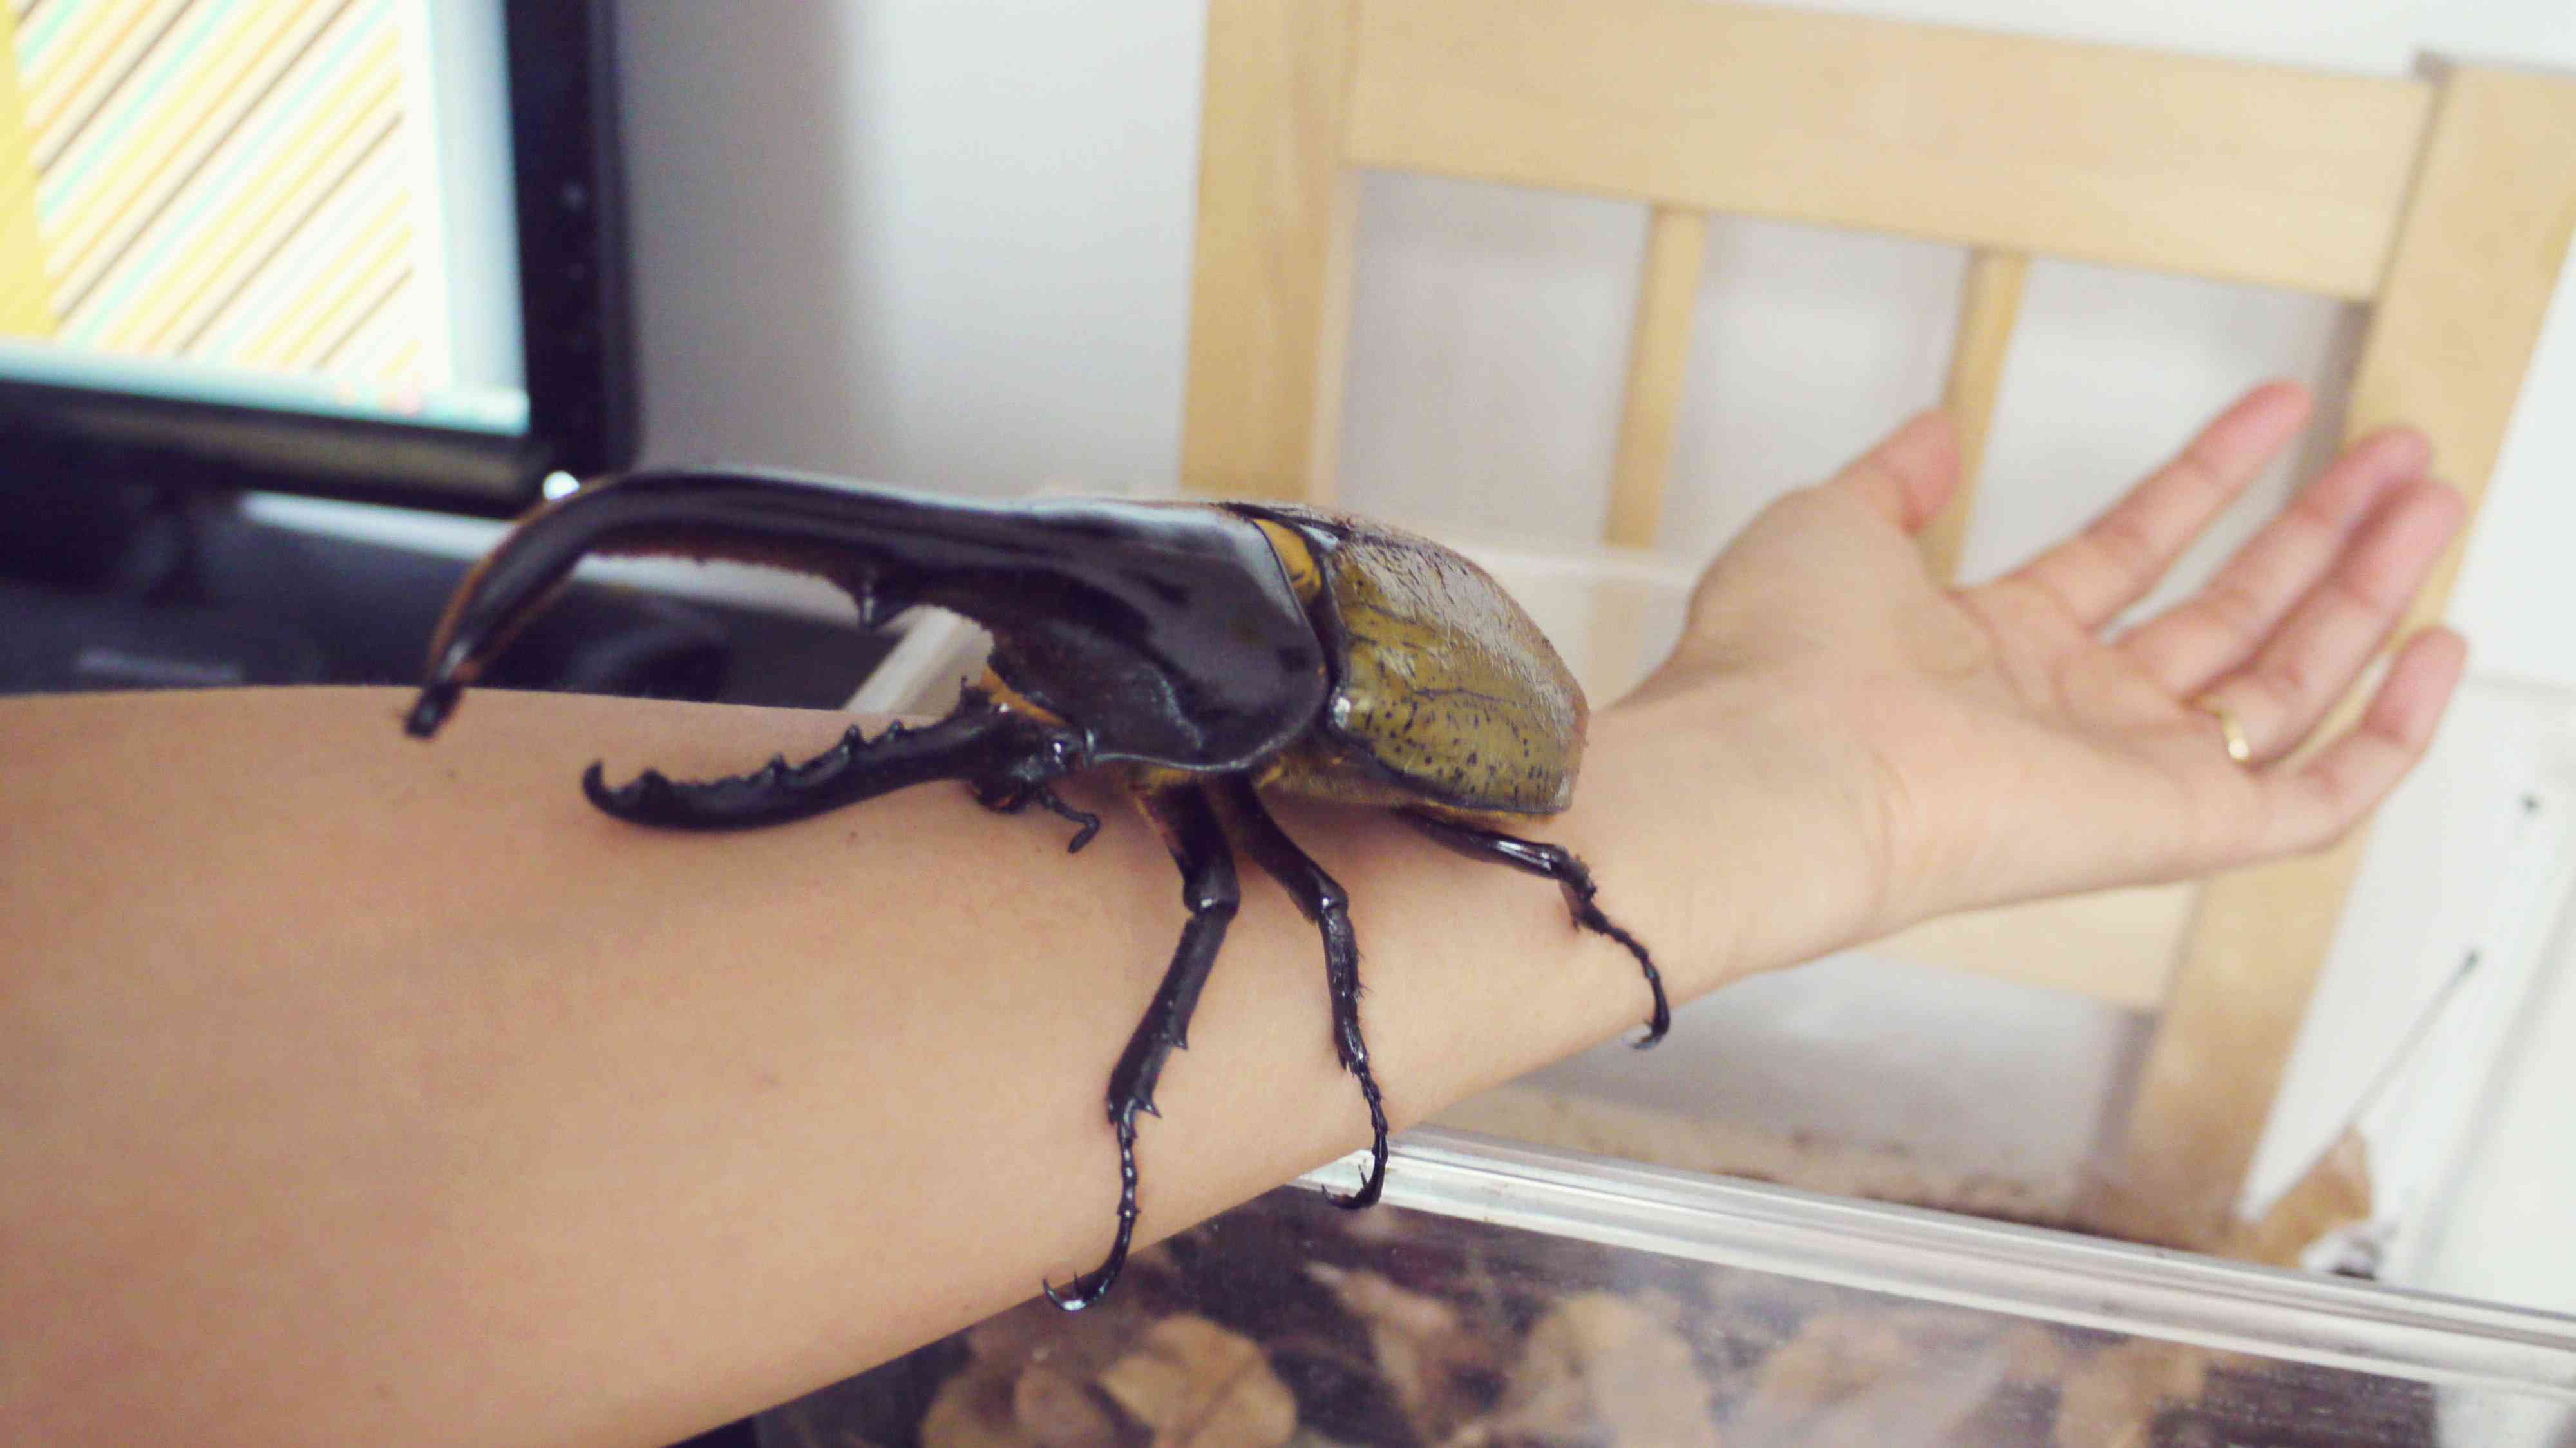 a brown and black Hercules beetle resting on a person's arm